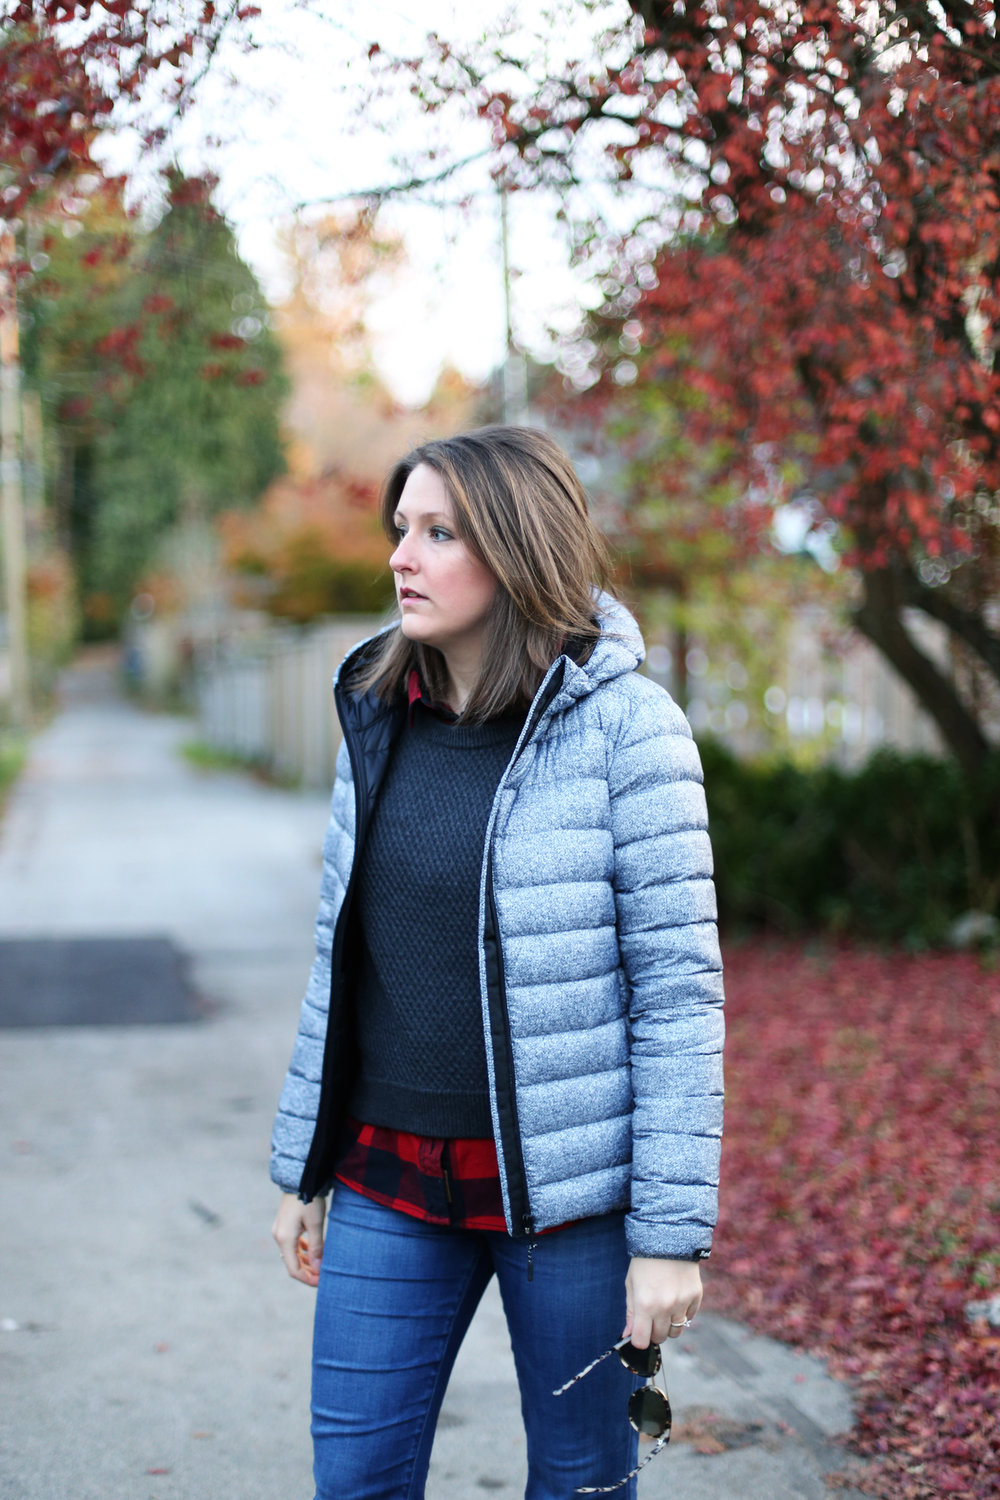 Roots down packable jacket - such a great coat for travel and keeping warm.